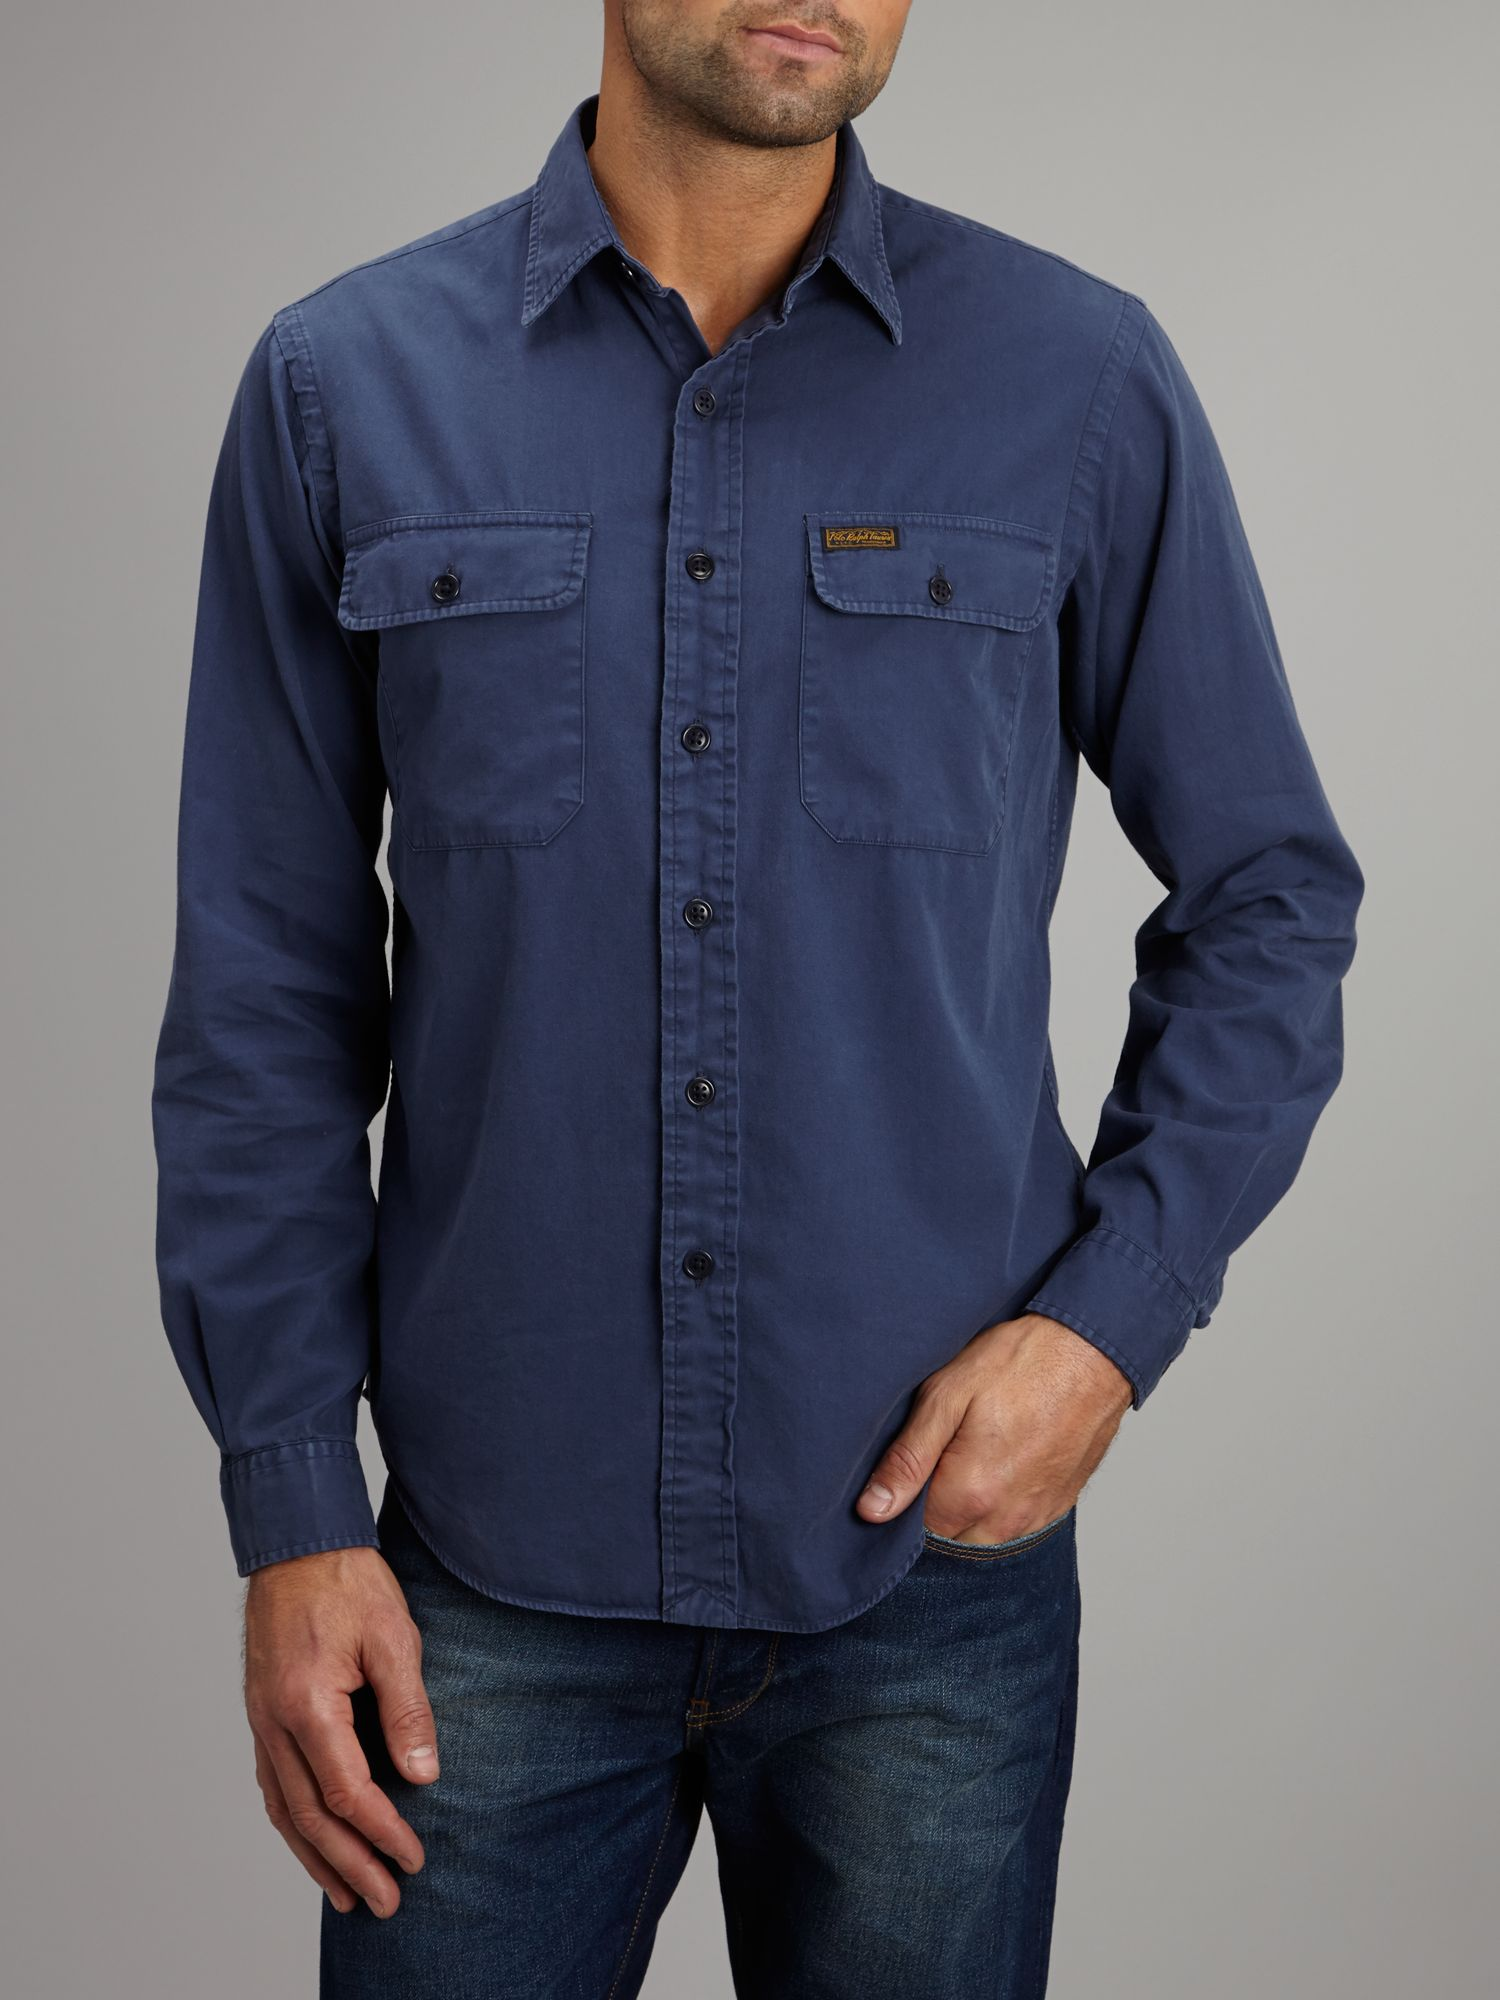 Long sleeve military shirt